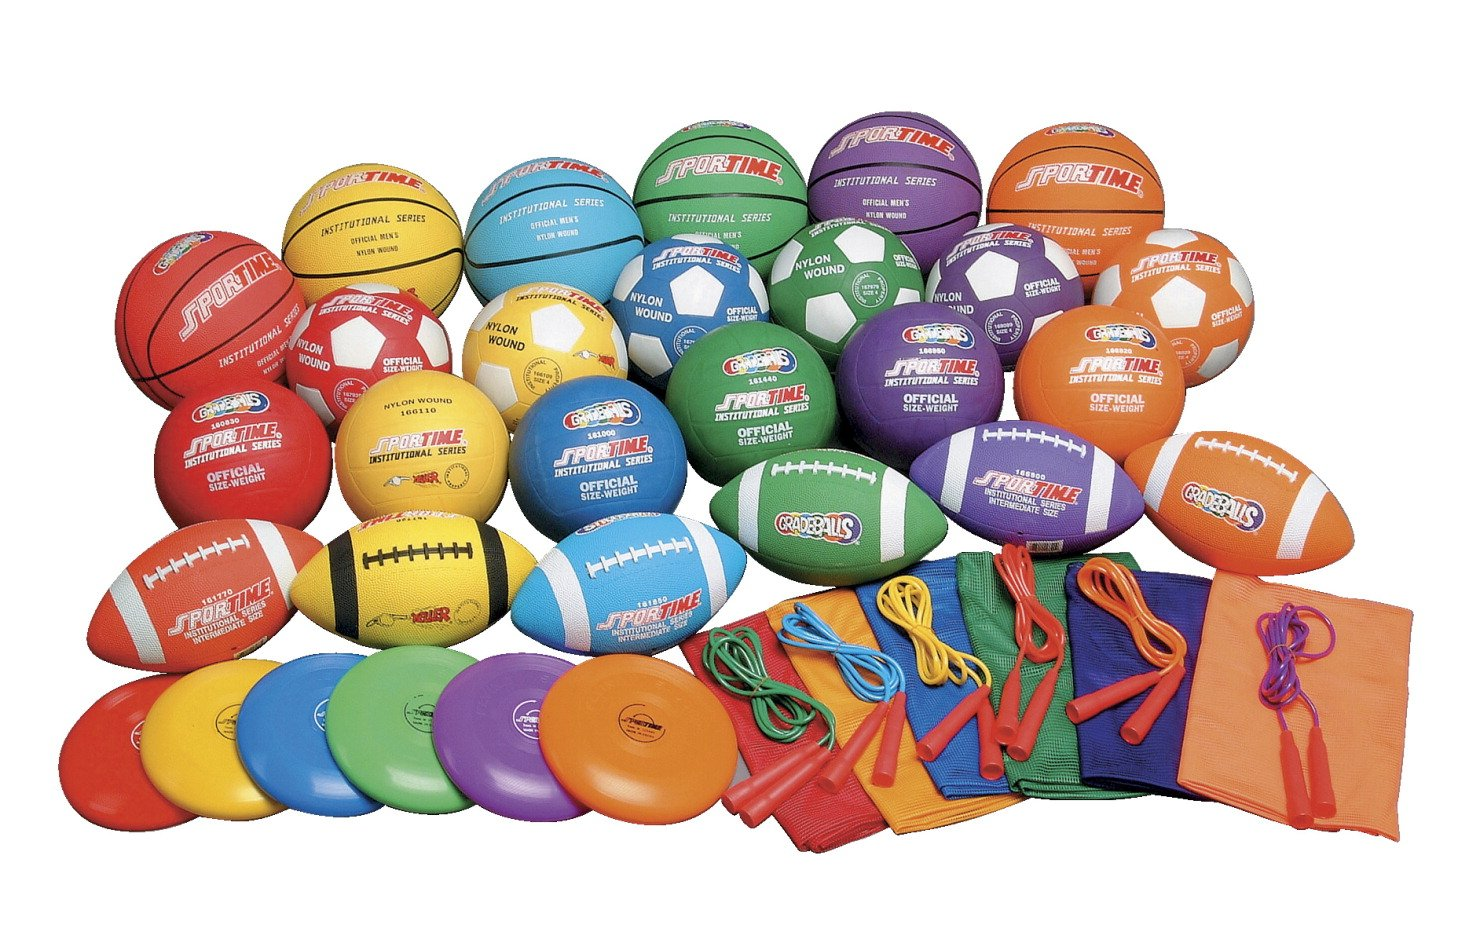 Sportime Gradestuff Middle School Equipment Pack, 42 Pieces